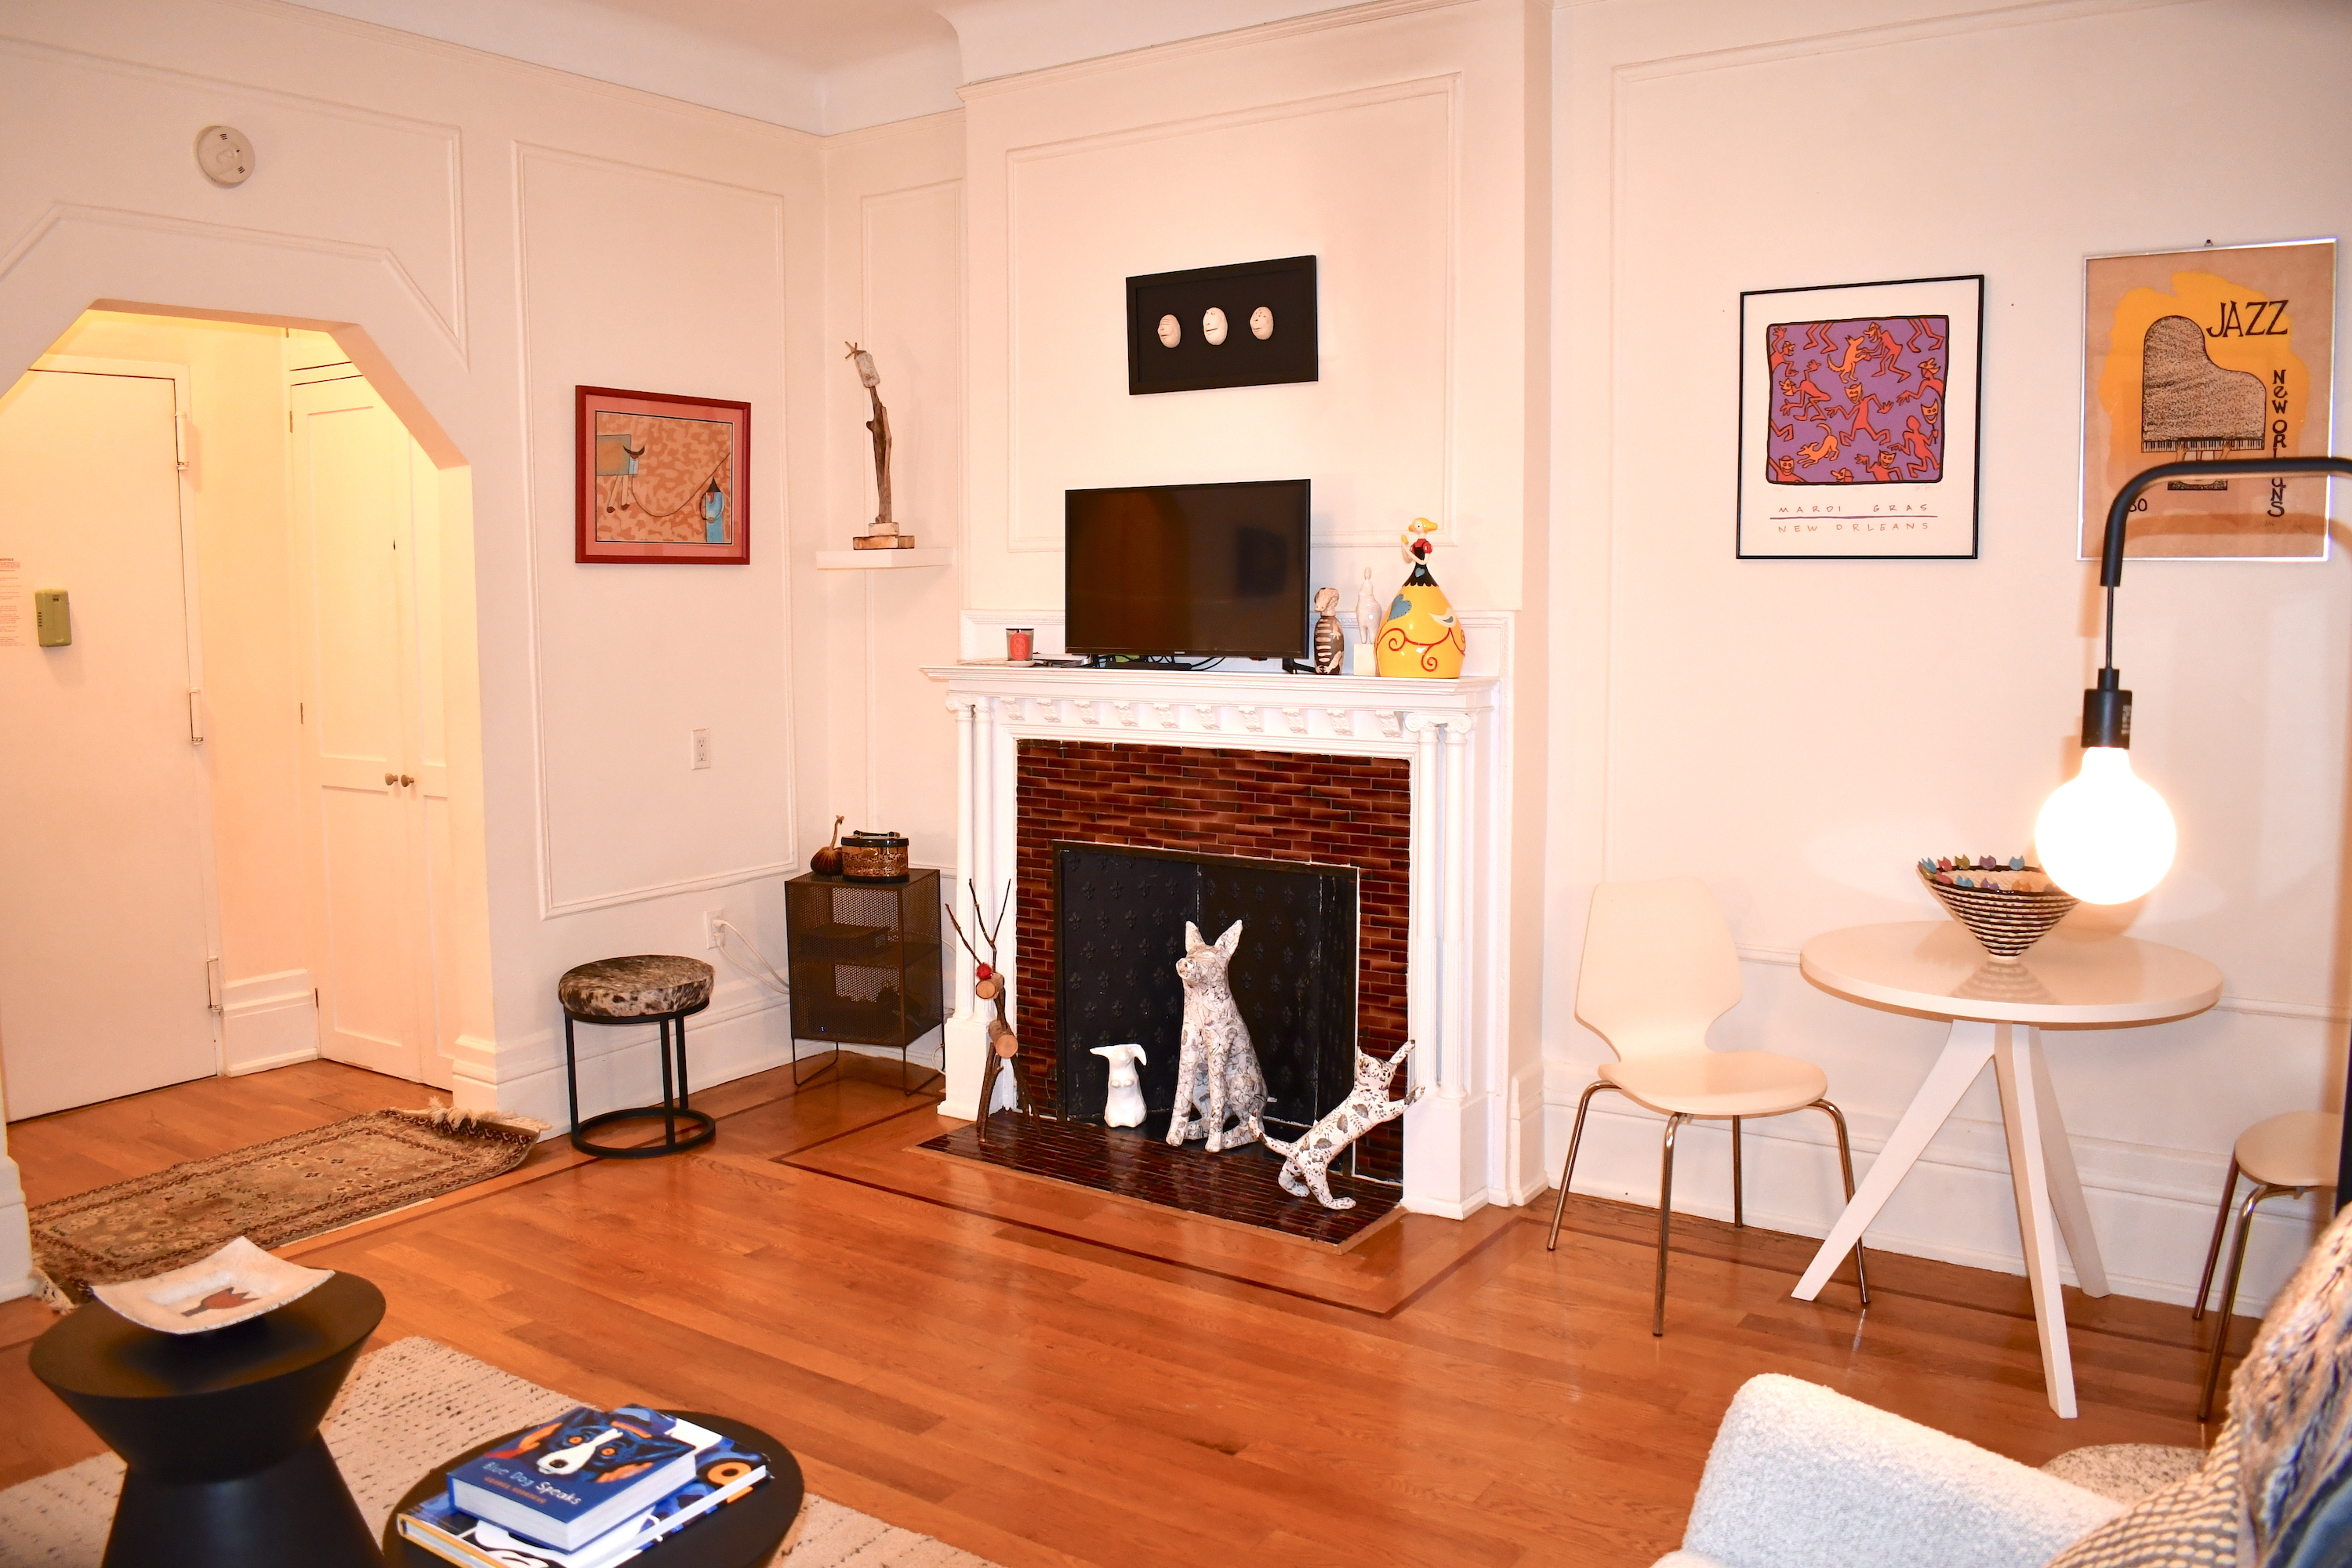 315 West 71st Street Lincoln Square New York NY 10023